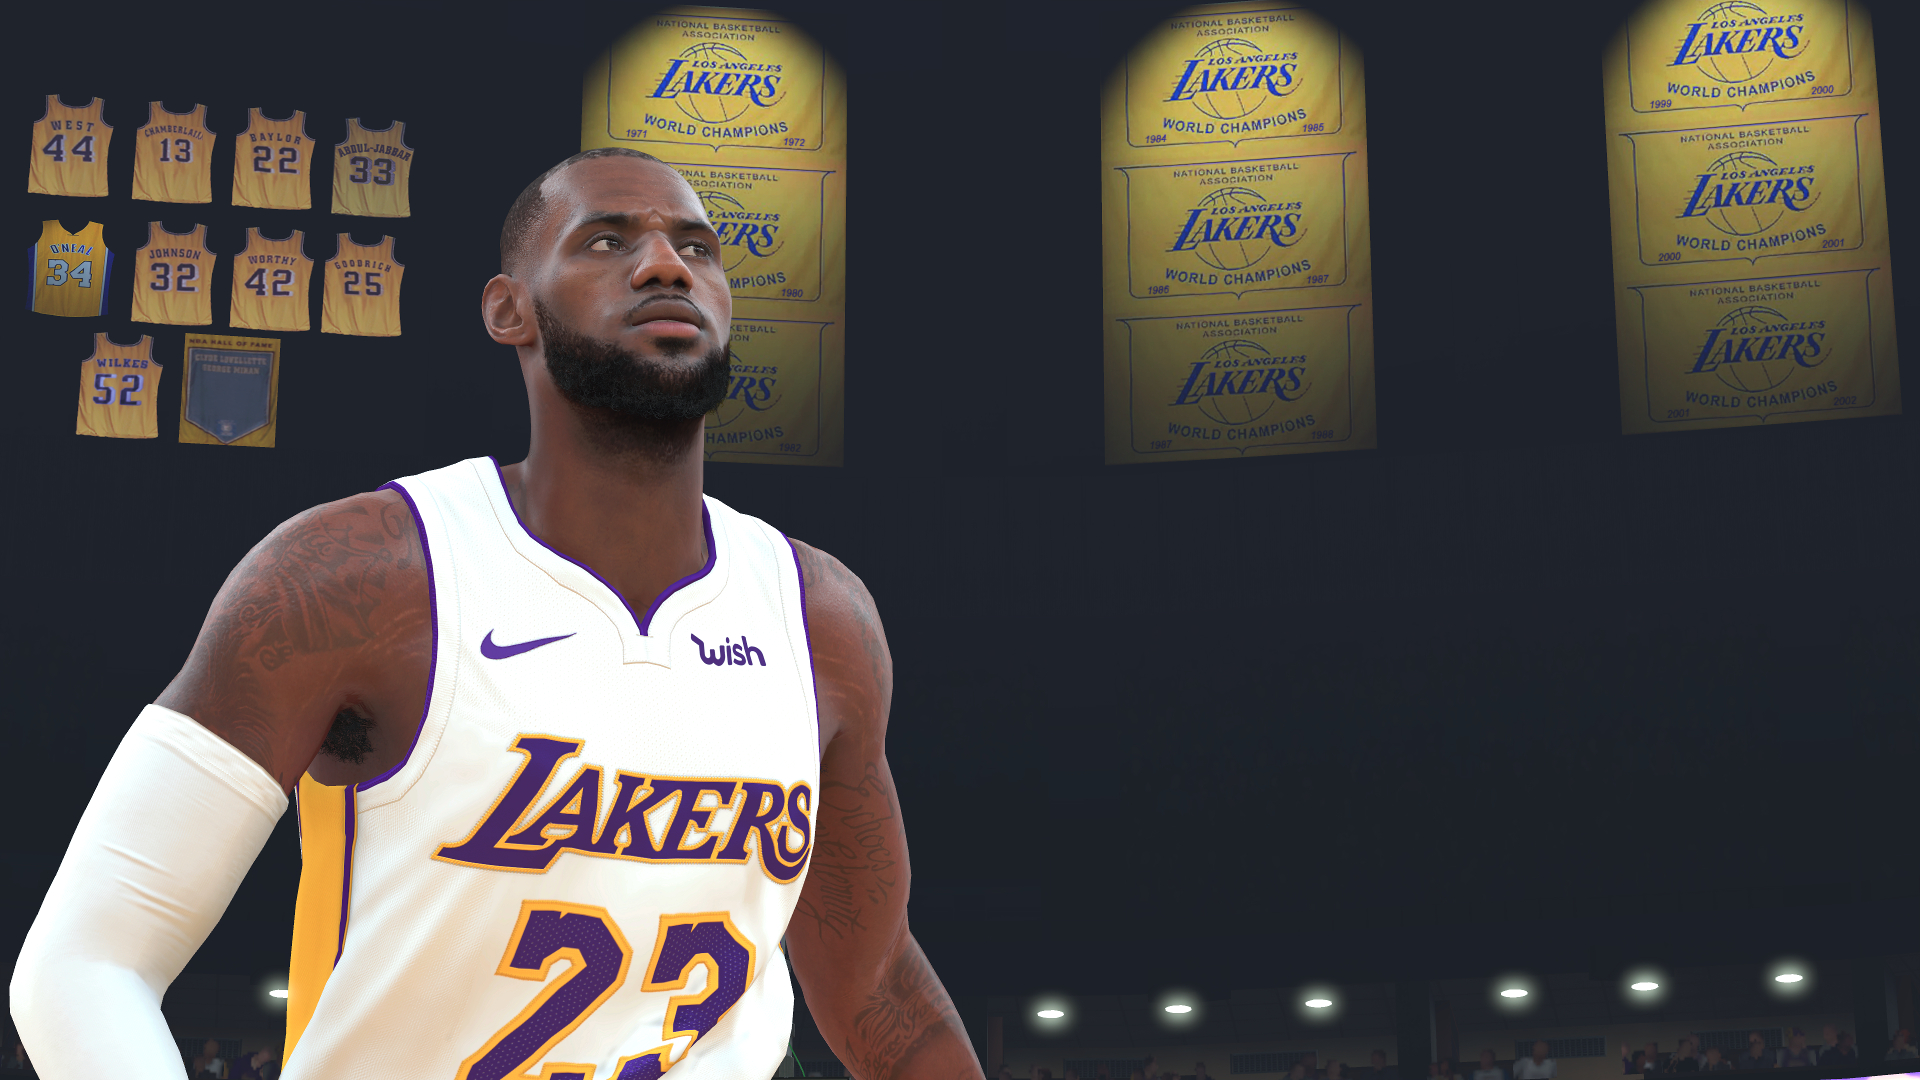 NBA 2K20 Ratings: LeBron James Doesn't Deserve 97 Or The Top Spot While Russel Westbrook Is In His Right Place At 90